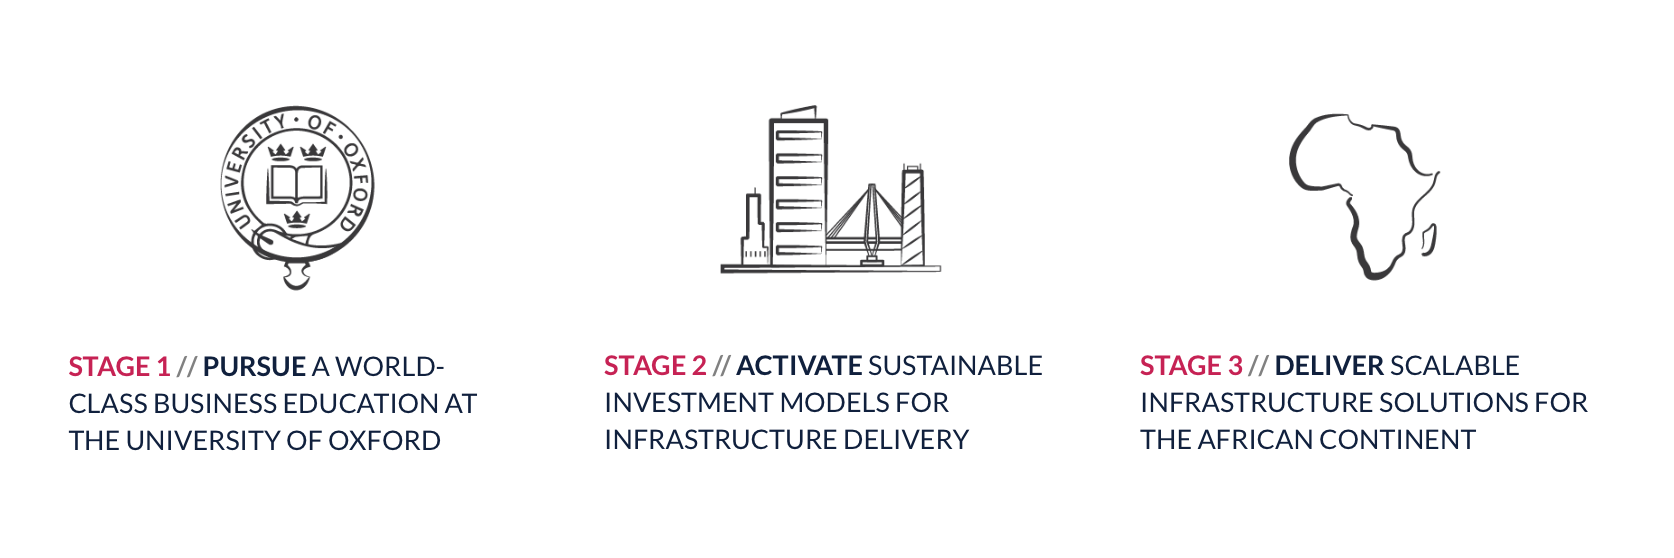 Stage 1: Pursue a world-class business education at The University of Oxford. Stage 2: Activate sustainable investment models for infrastructure delivery. Stage 2: Deliver scalable infrastructure solutions for the African Continent.